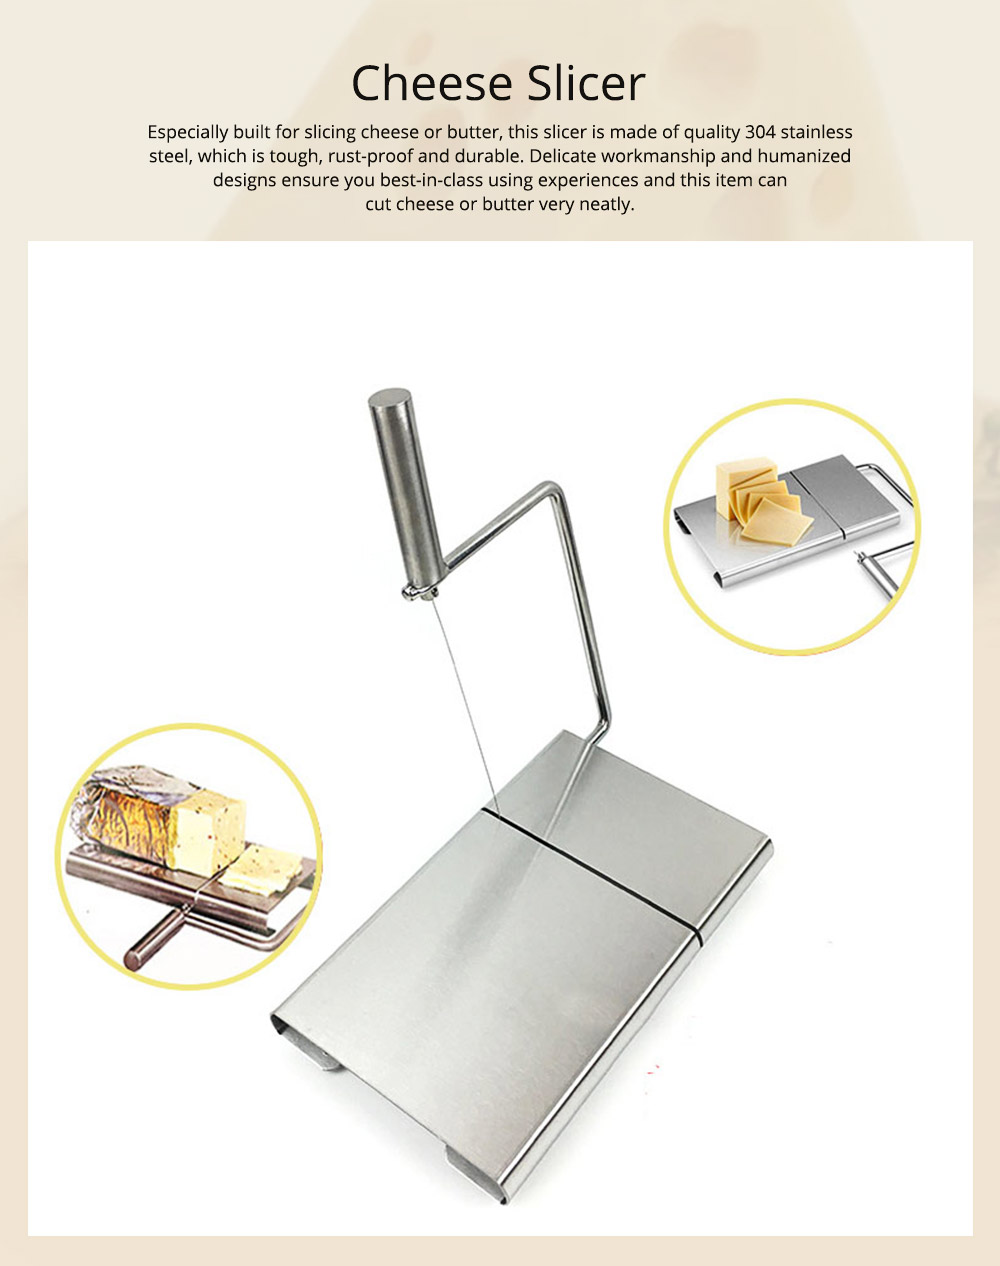 Professional Quality 304 Stainless Steel Cheese Slicer, Butter Cutter Board with Replaceable Slicing Line 0